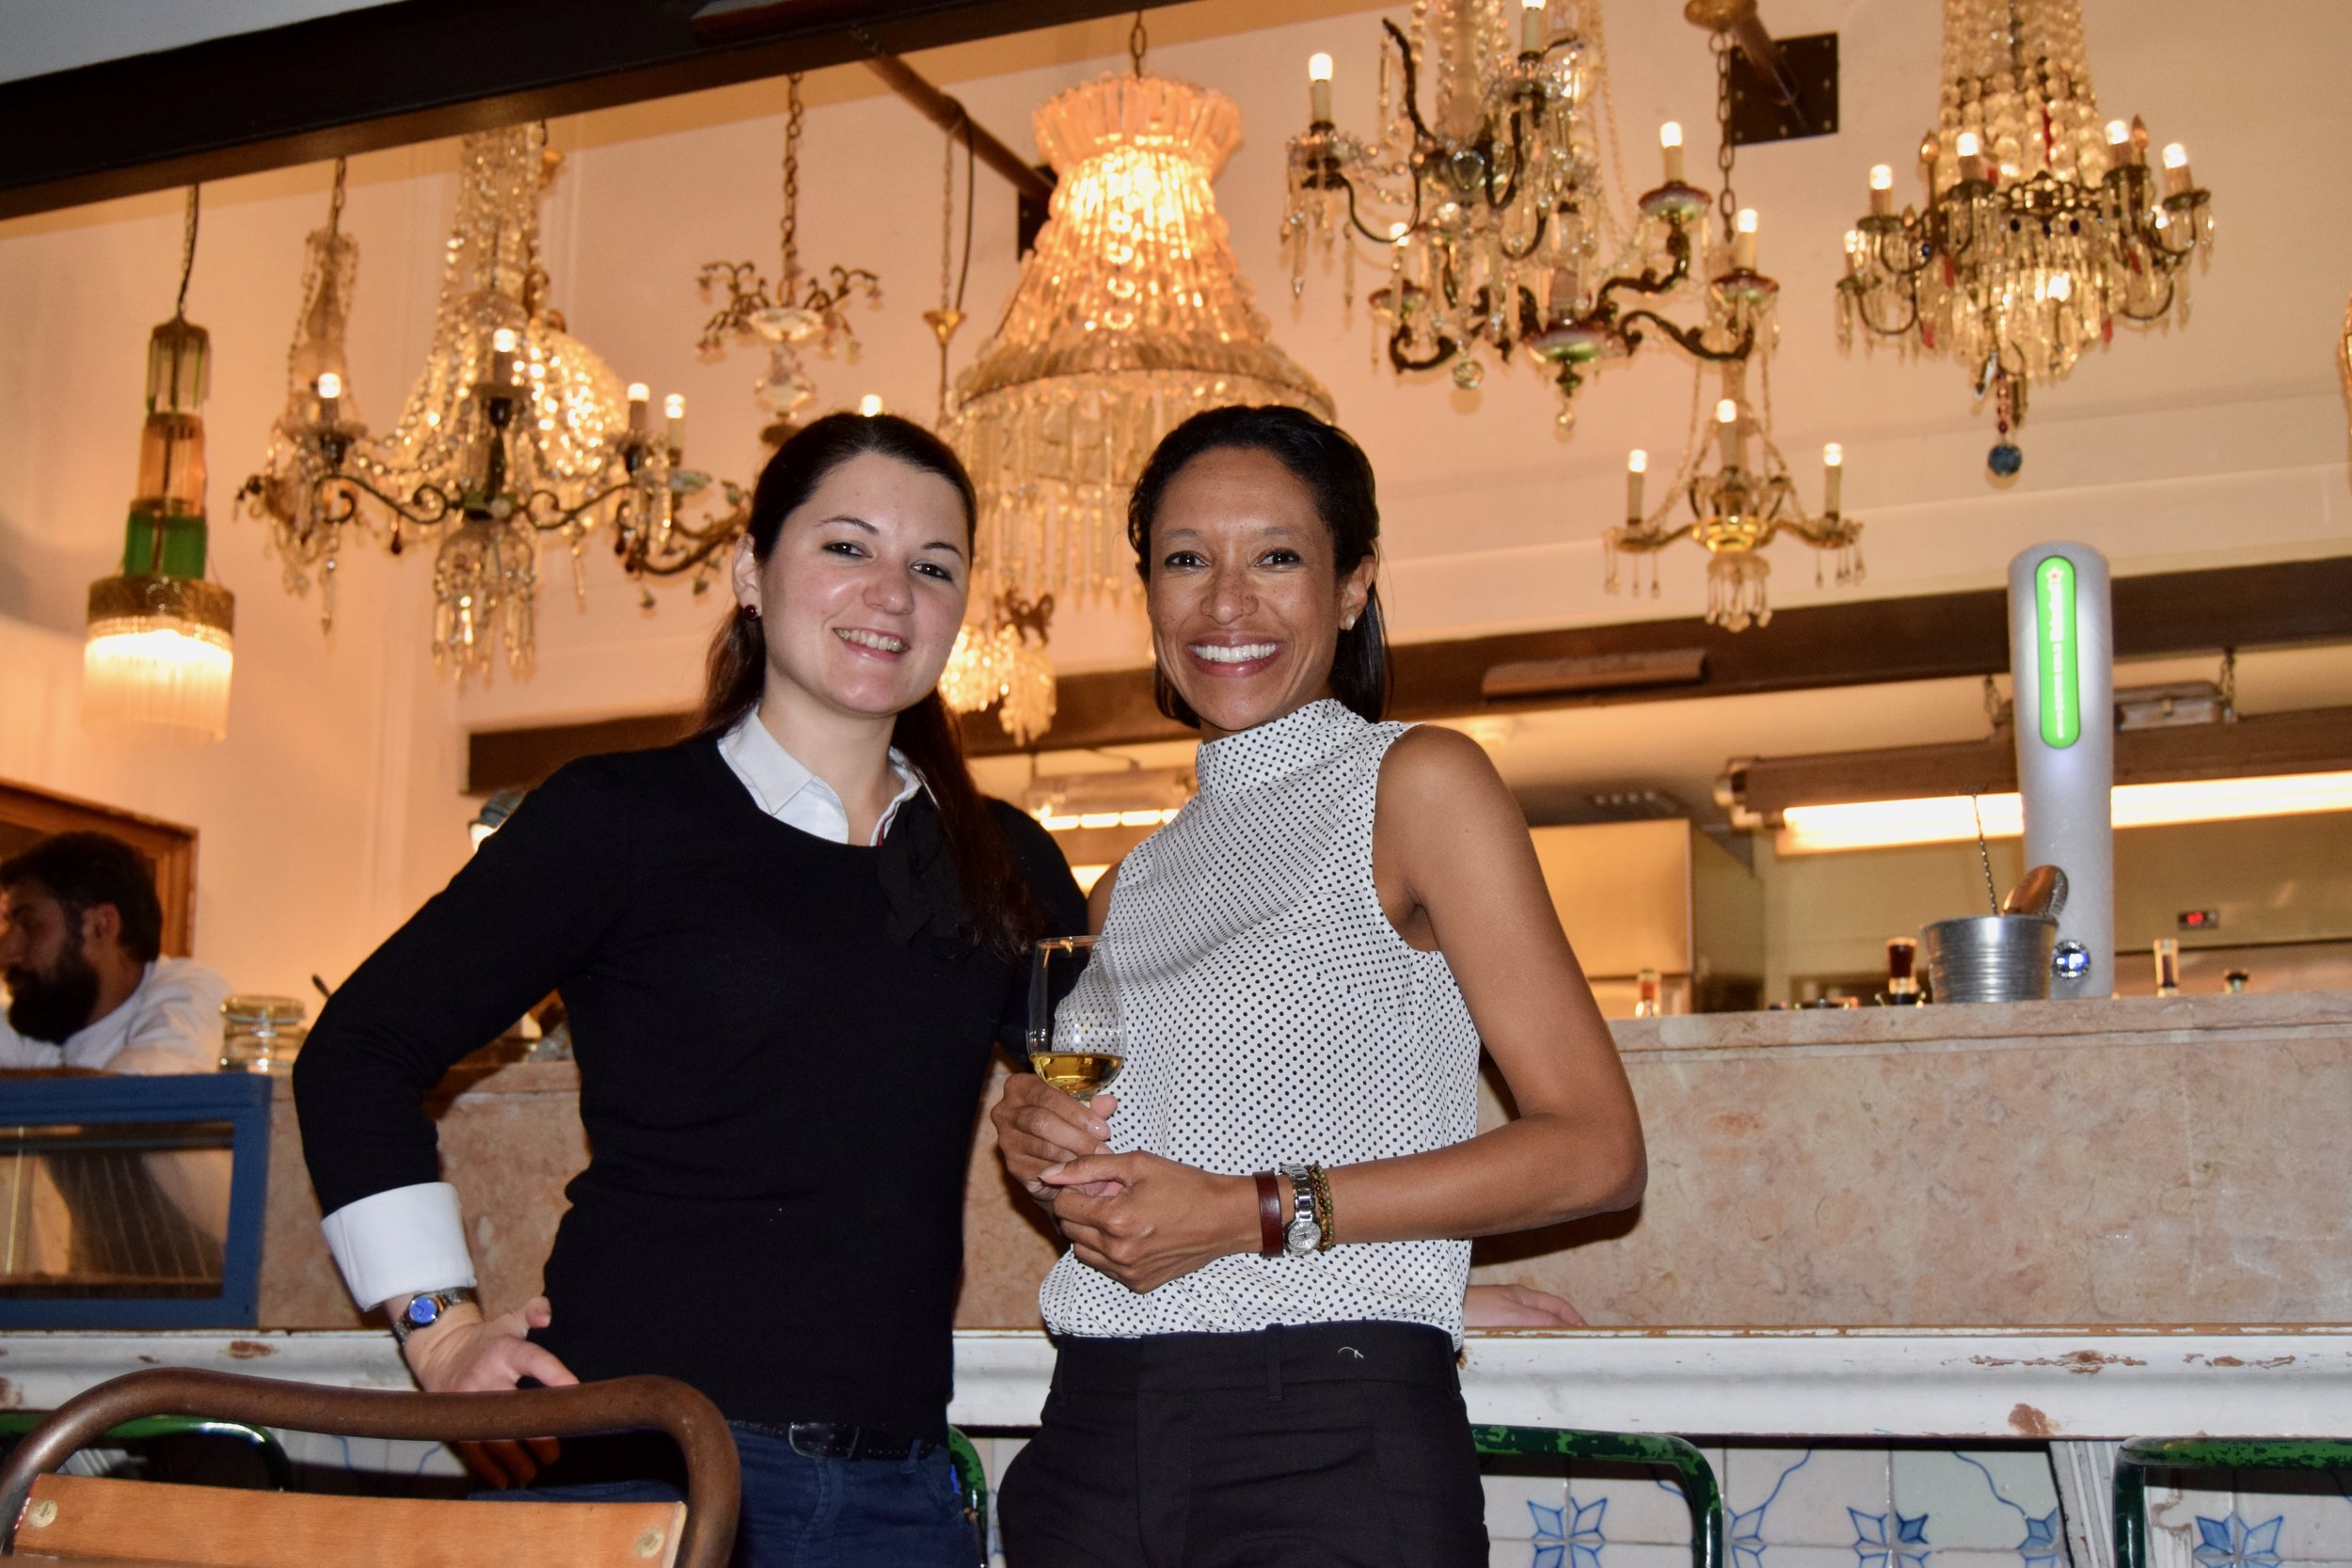 andrea smith, sommelier for the insolito restaurante